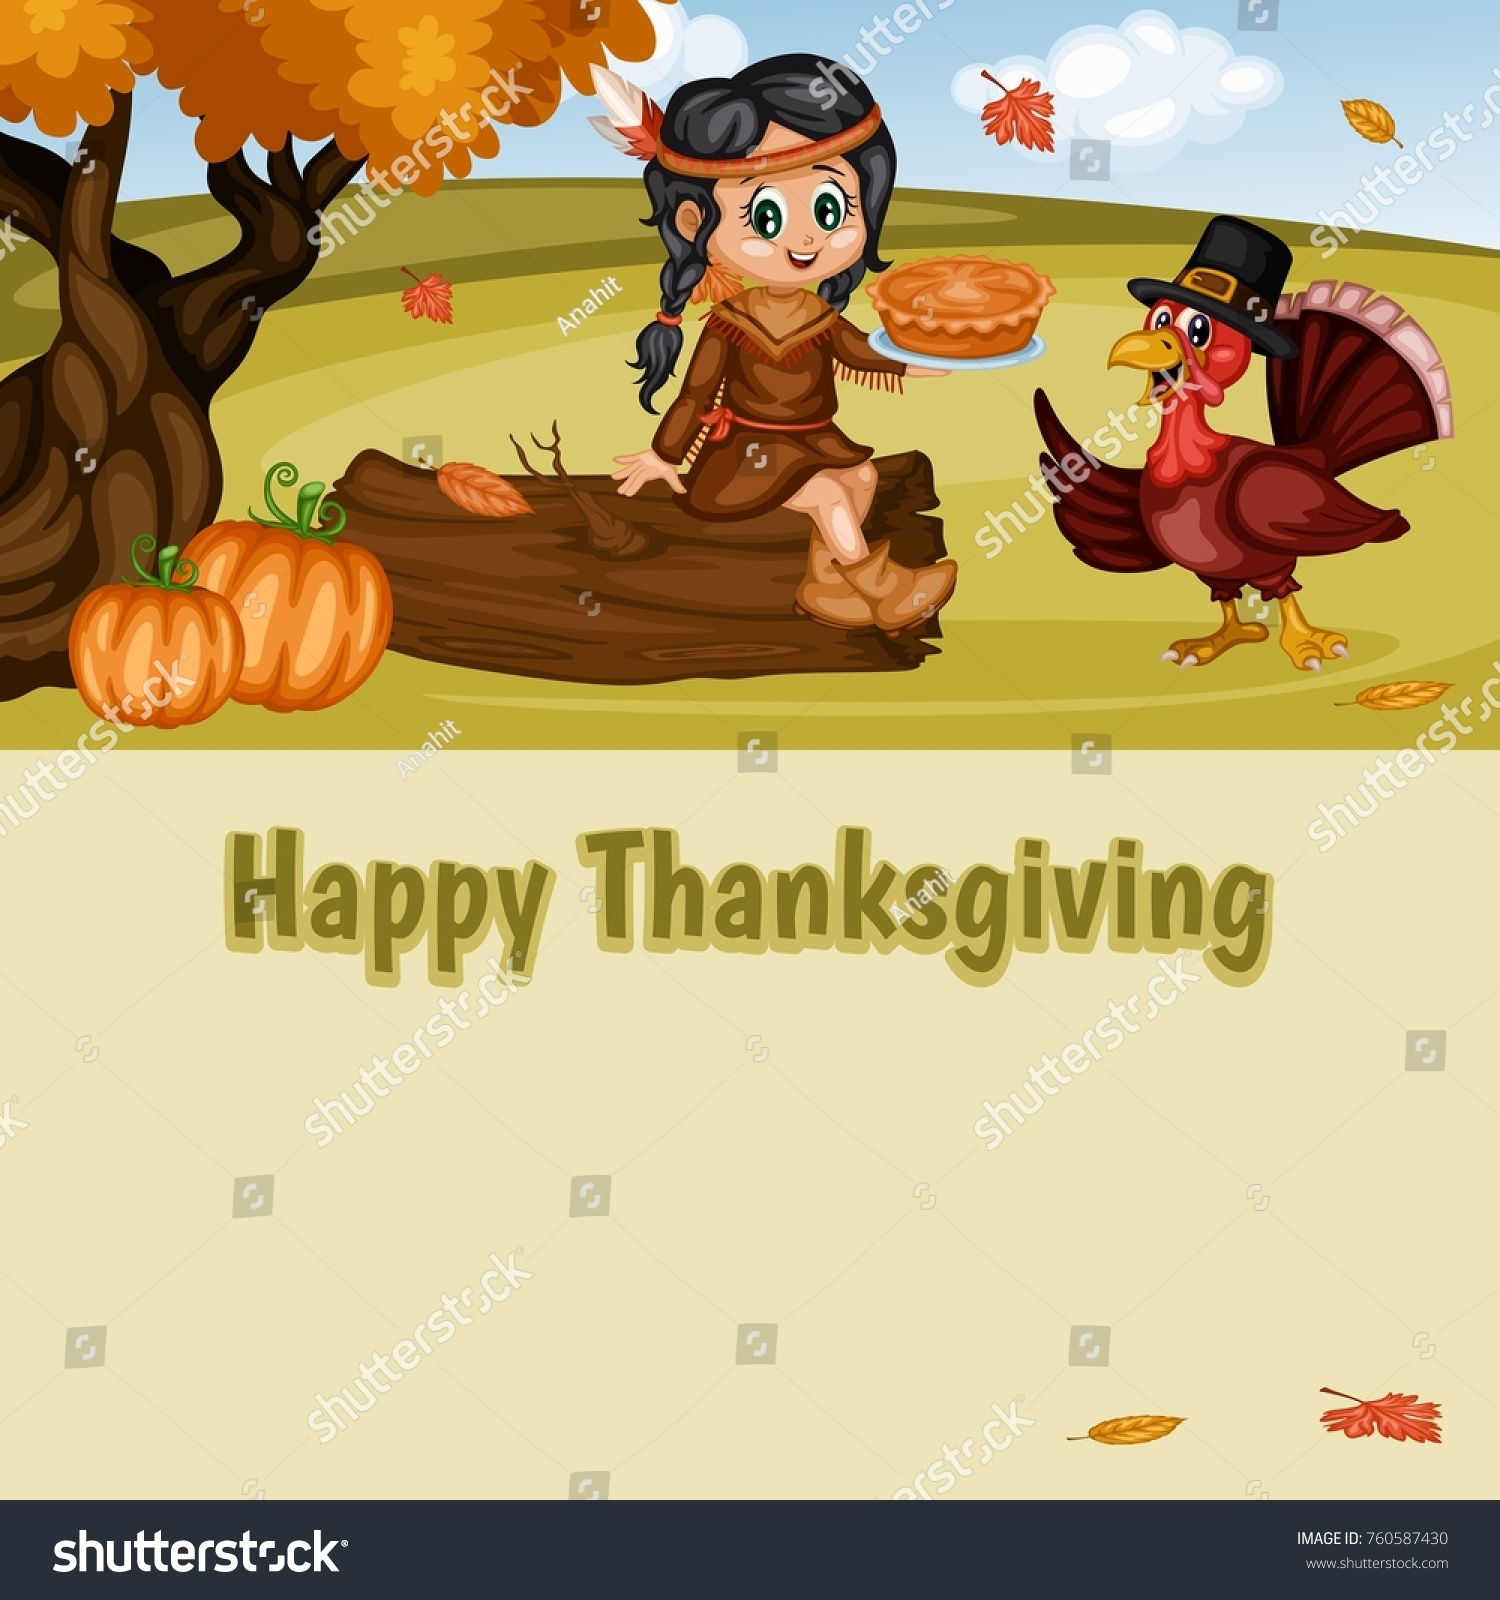 Happy thanksgiving greeting card vector illustration stock vector happy thanksgiving greeting card vector illustration stock vector 760587430 shutterstock m4hsunfo